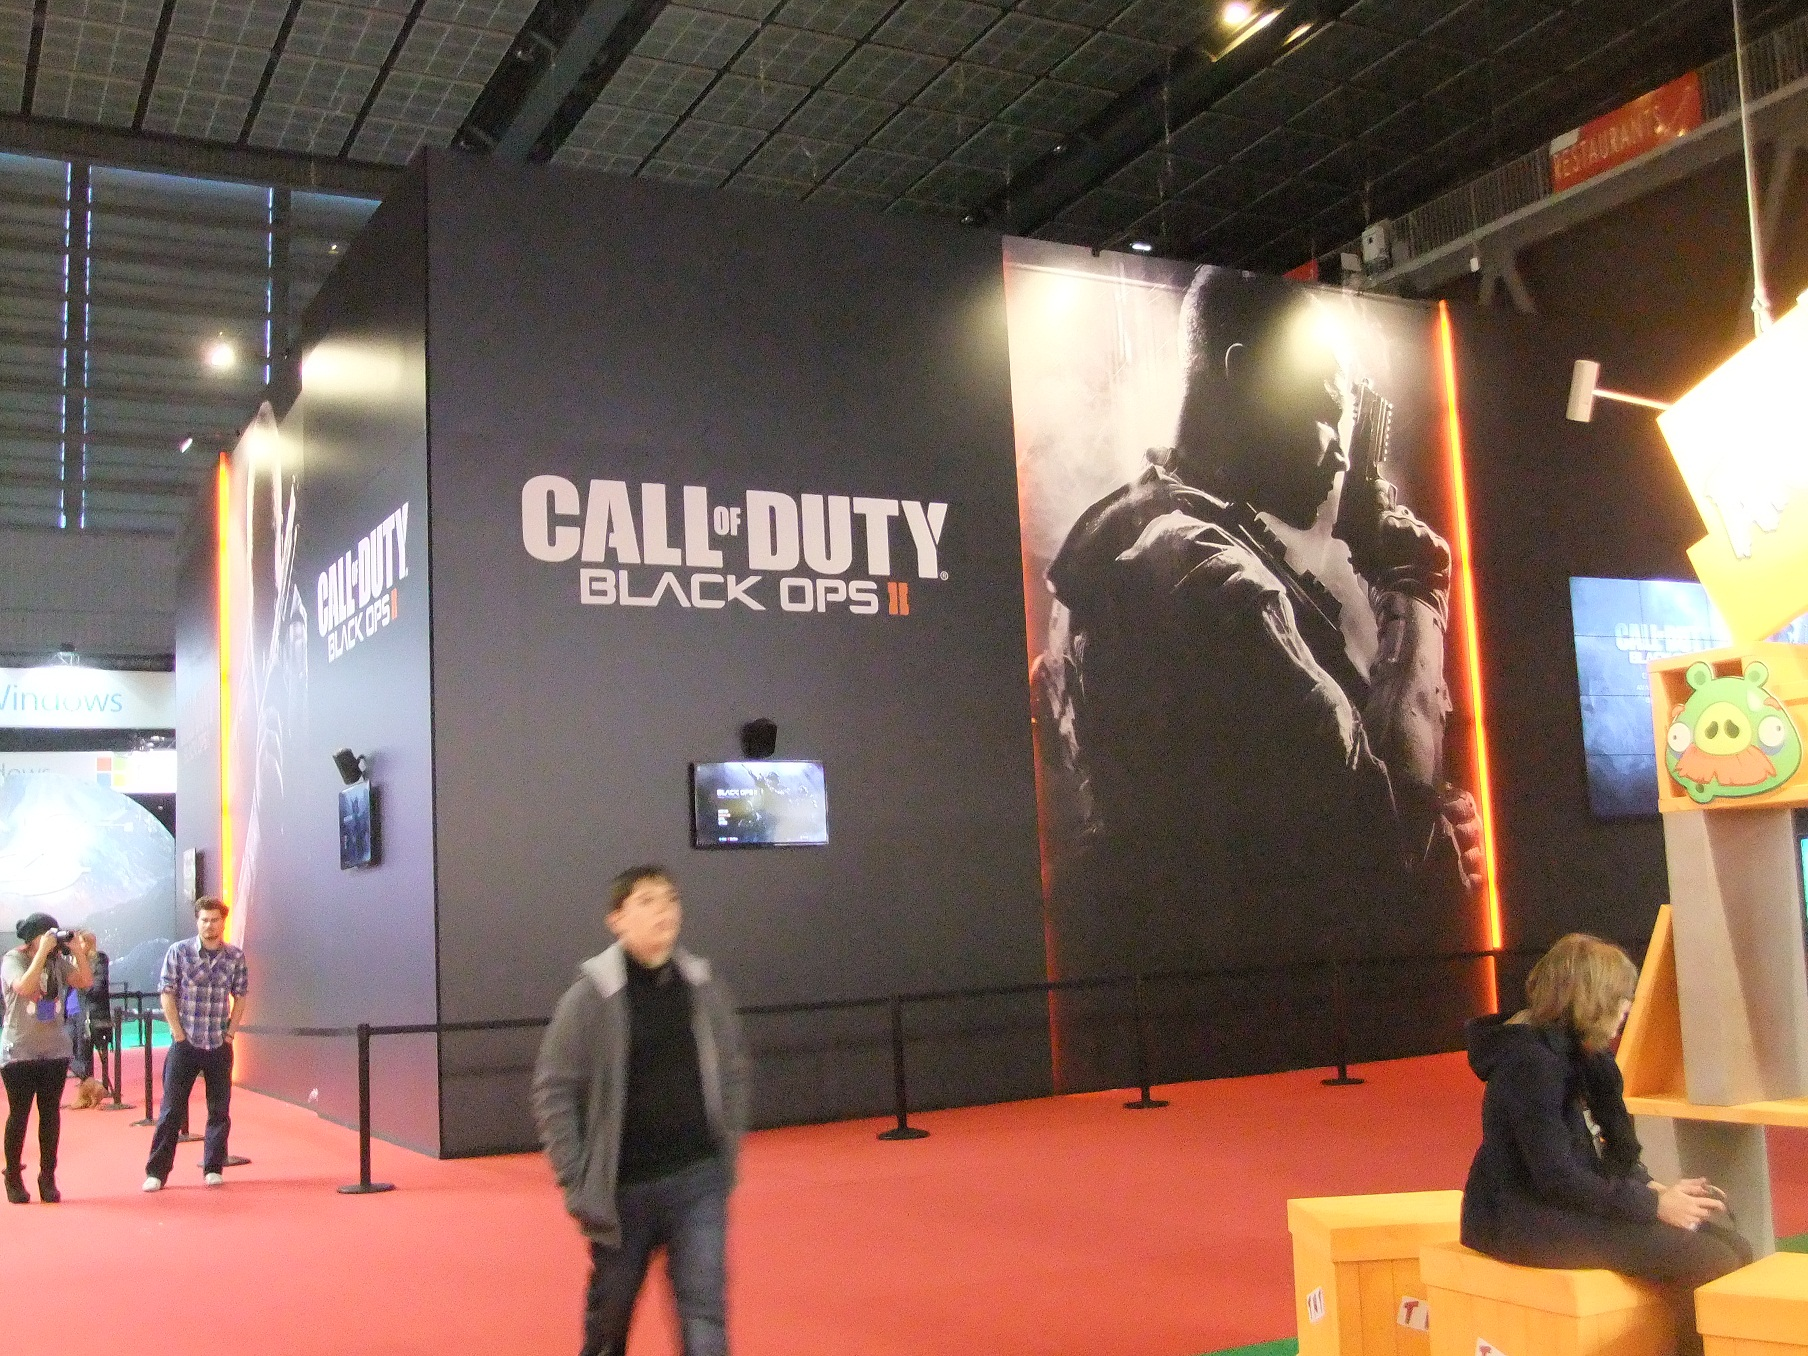 paris games week 2012 ce qu il faut retenir du salon. Black Bedroom Furniture Sets. Home Design Ideas